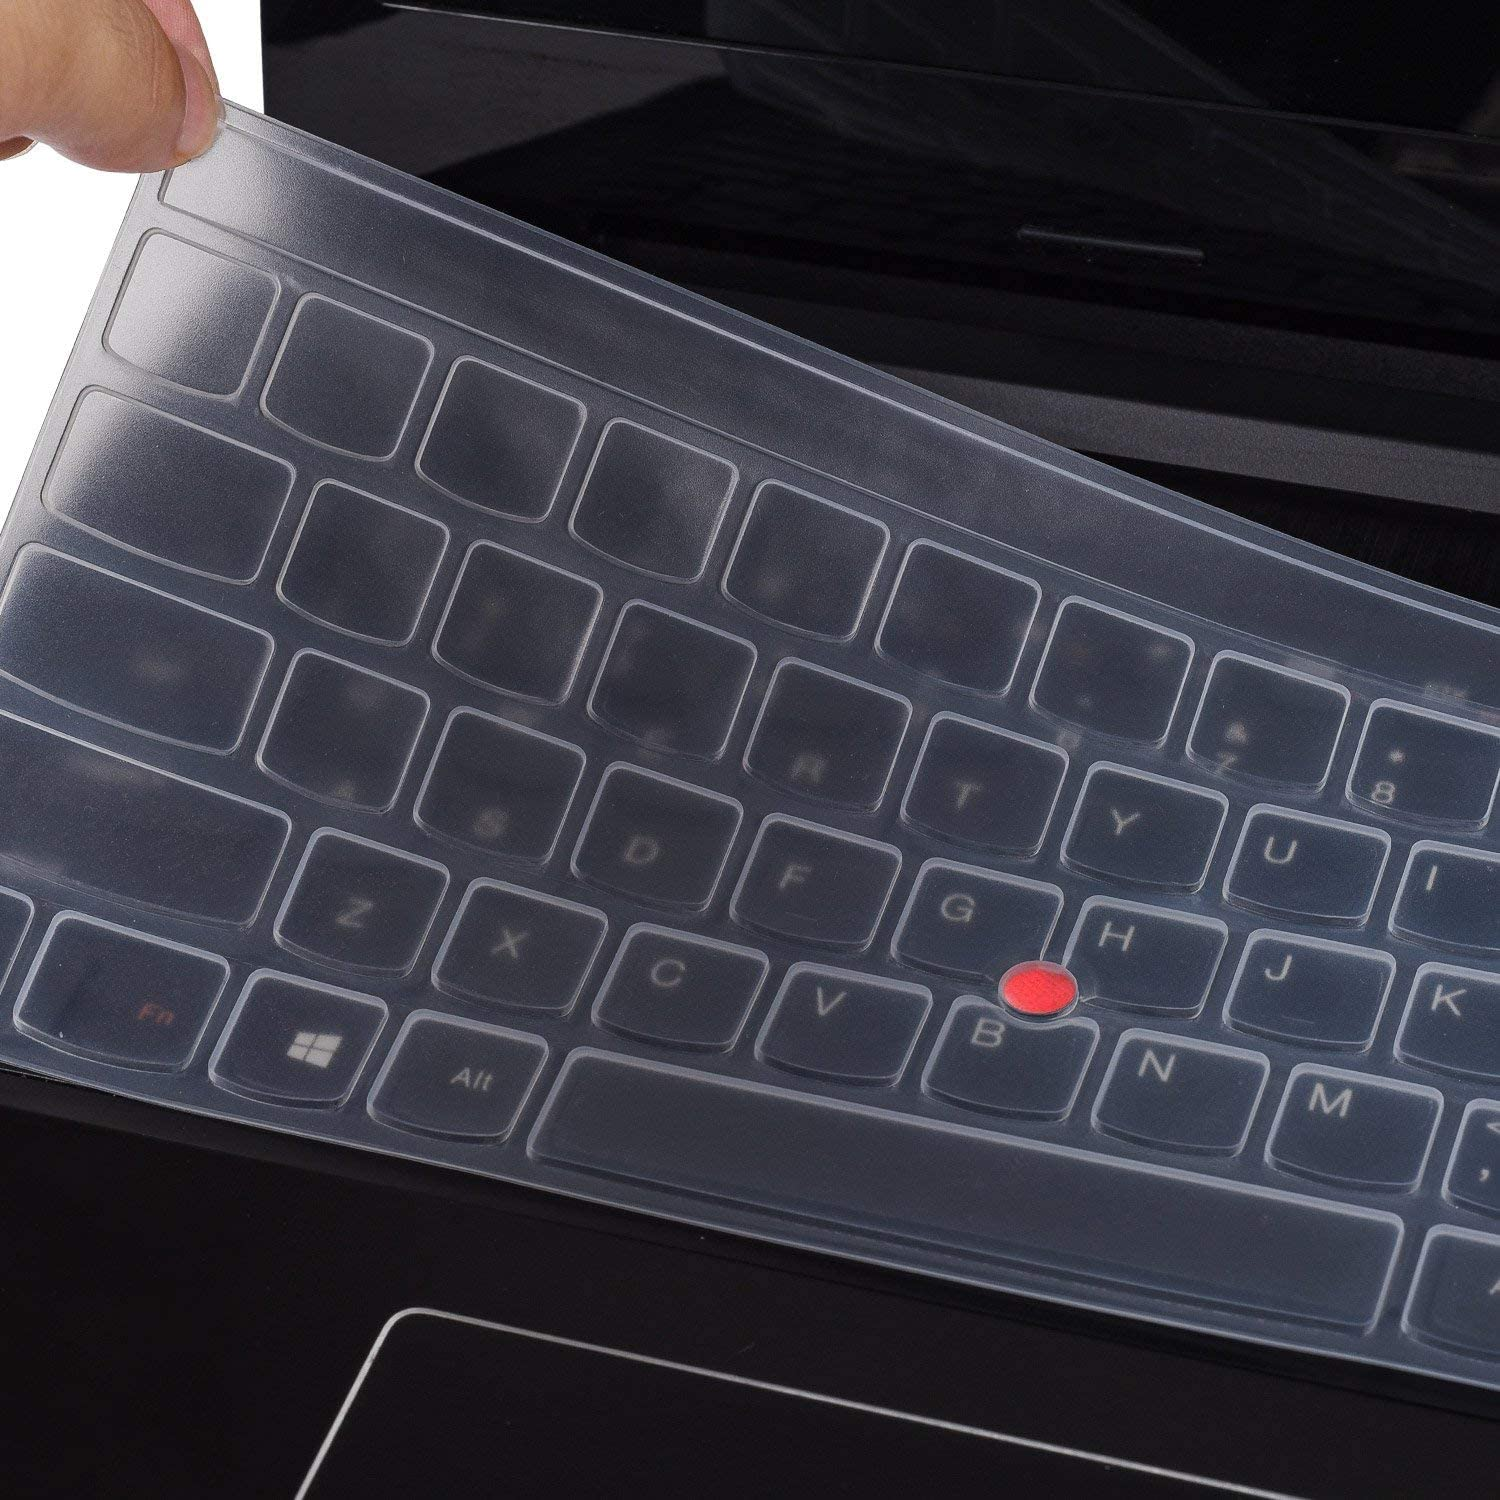 """Keyboard Cover for Lenovo Thinkpad P70 P71 17.3"""", 15.6"""" Thinkpad P50 P50s, 15.6"""" Thinkpad E531 E540 E550 E555 E560 E565 E570 E575 W540 W541 W550 W550s L560 L570 T550 T560 Laptop, Clear"""